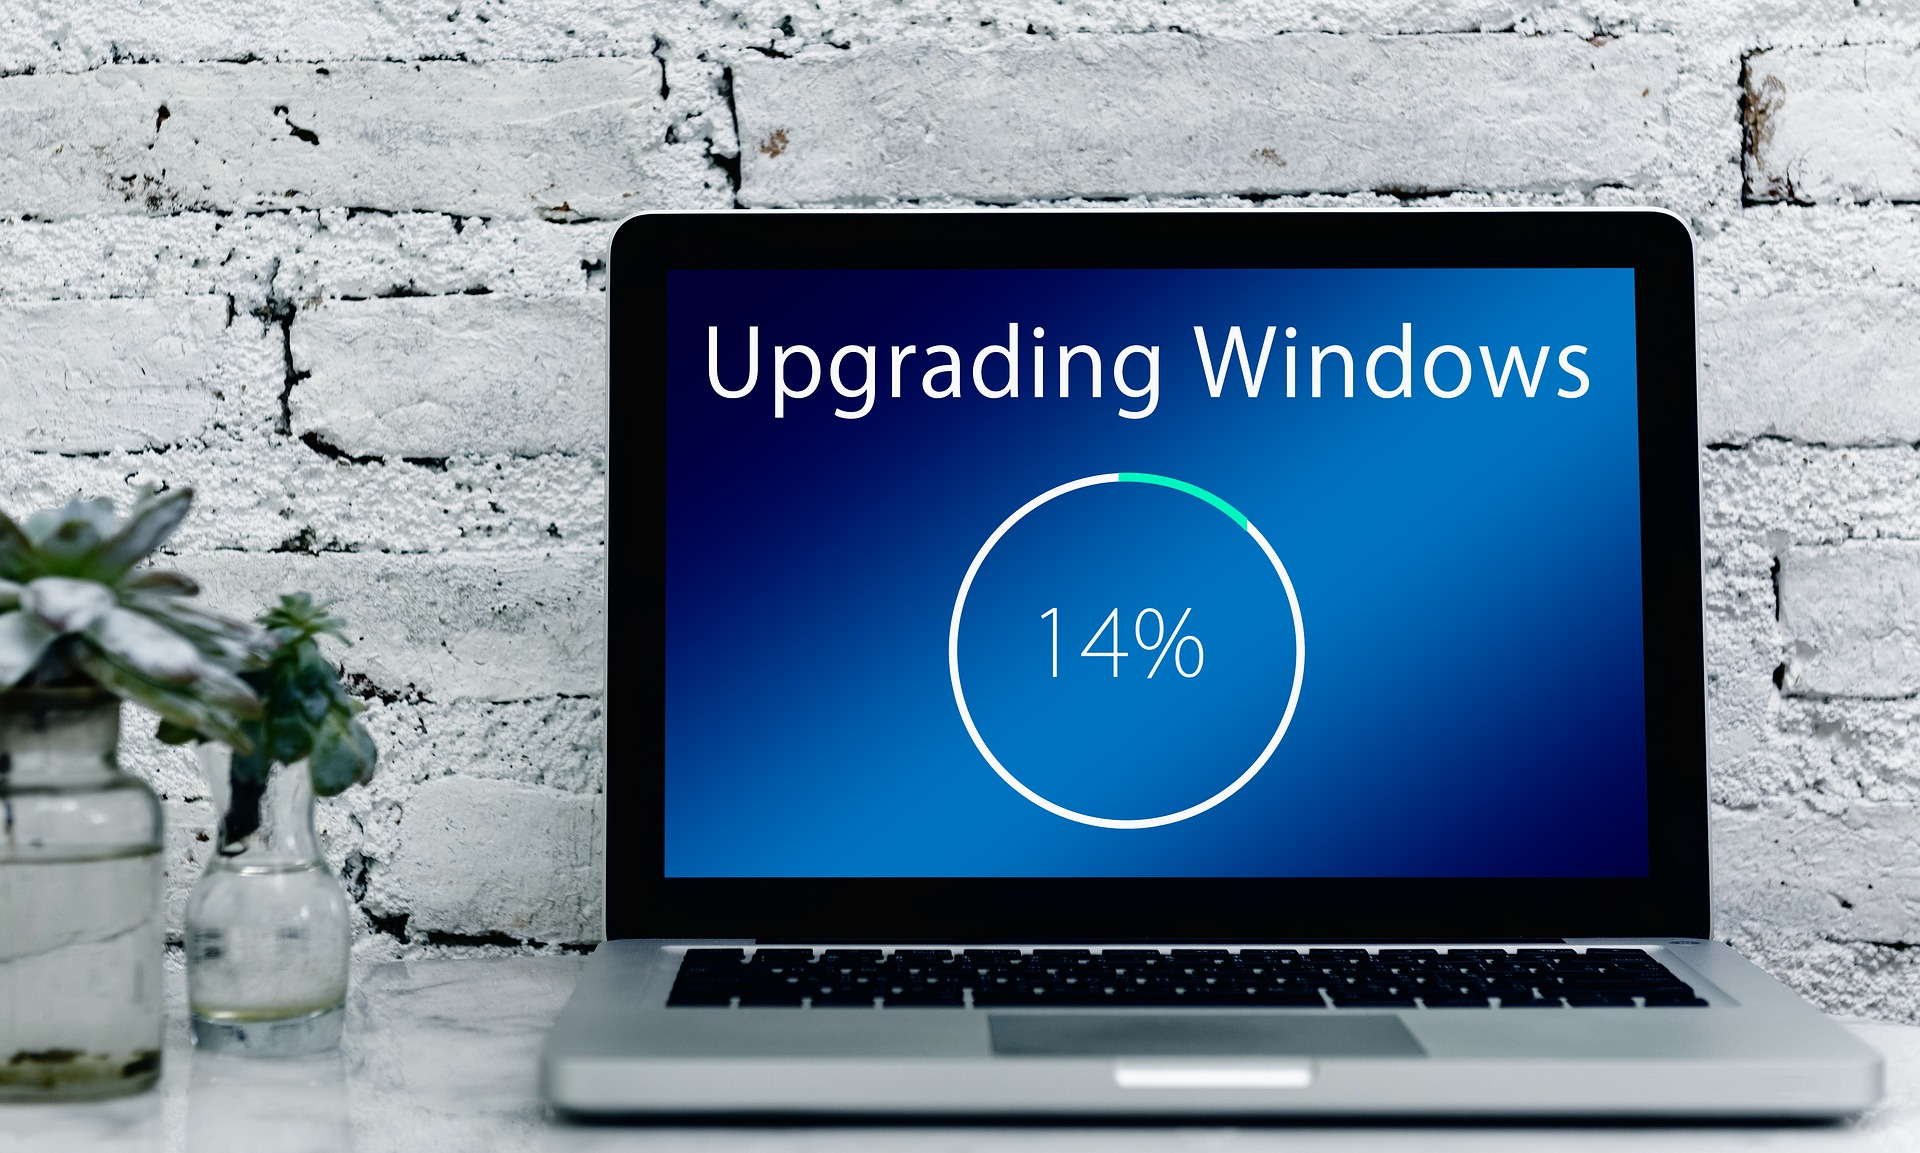 upgrading the Windows operating system